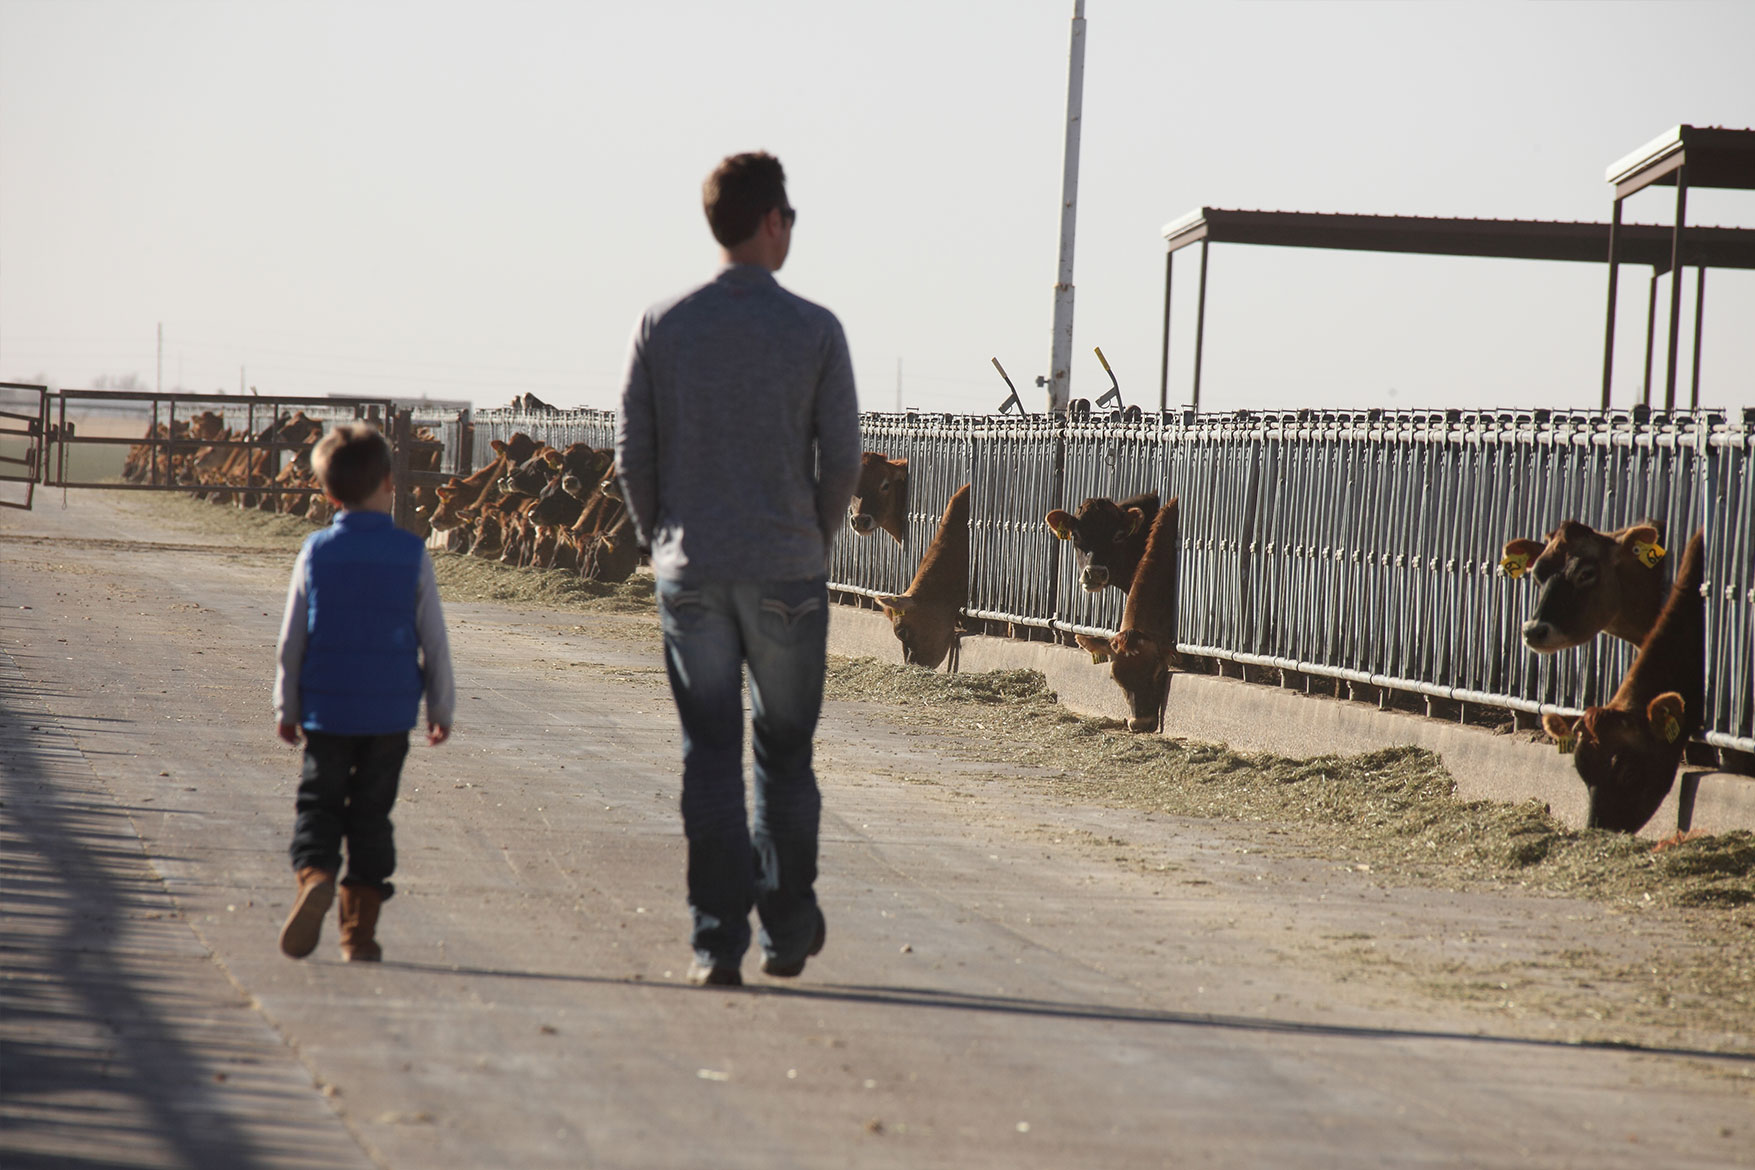 Father and son checking on the herd.